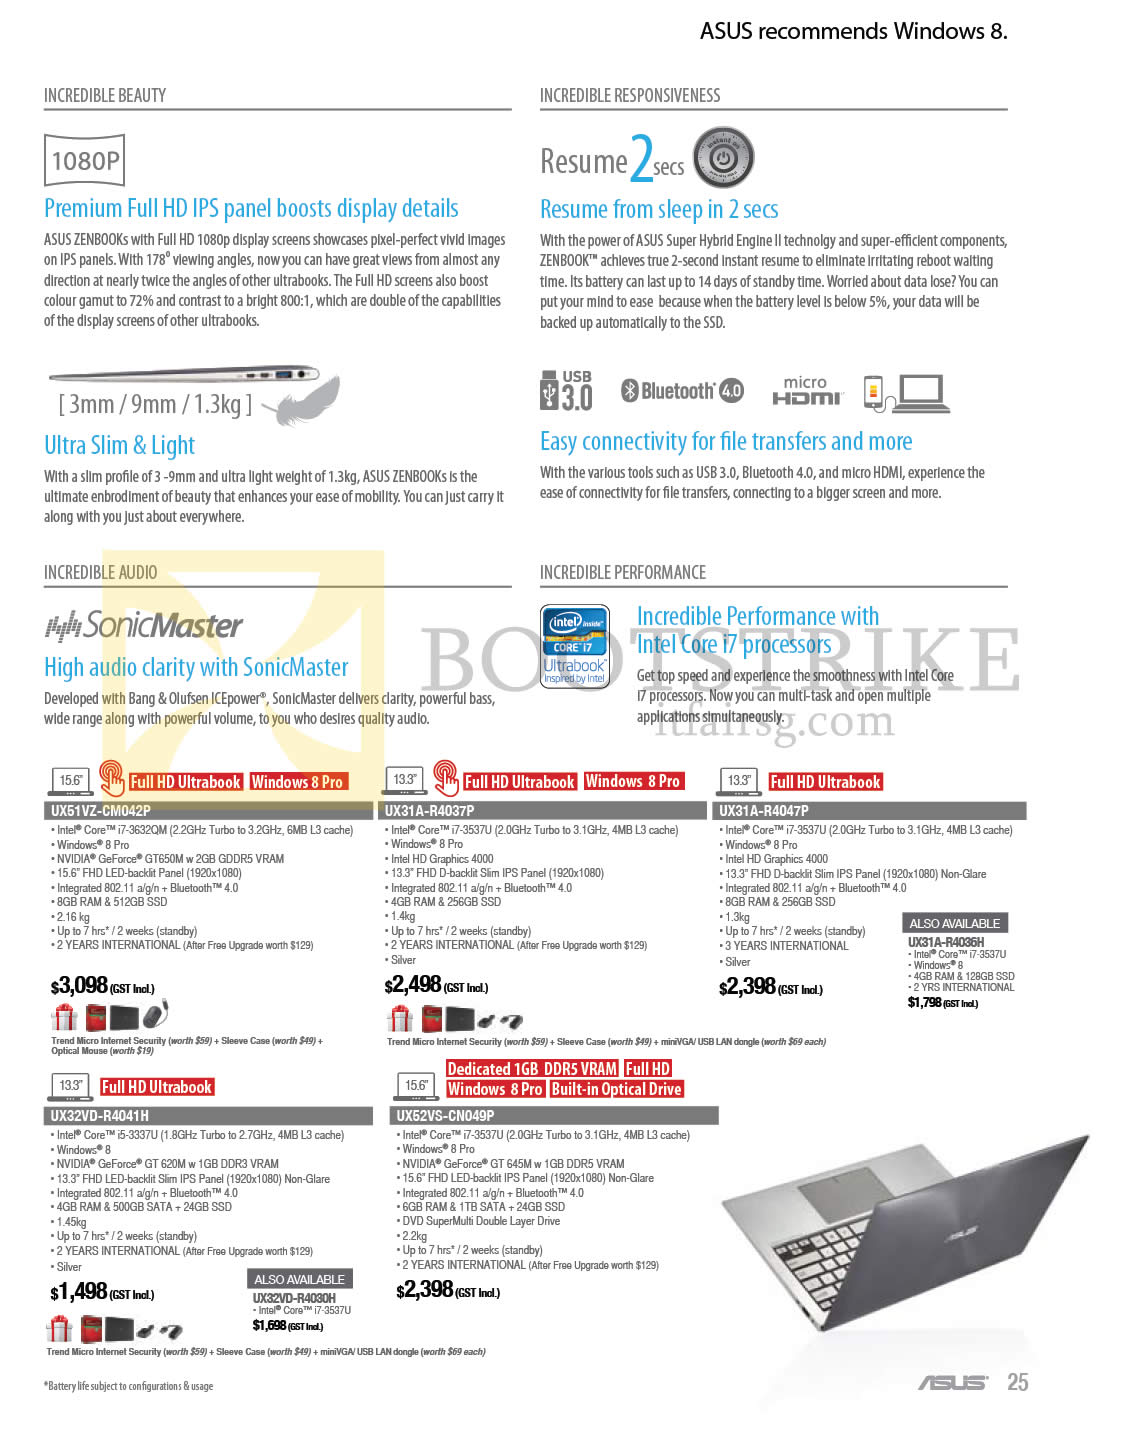 COMEX 2013 price list image brochure of ASUS Notebooks Zenbook UX51VZ-CM042P, UX31A-R4037P, UX31A-R4047P, UX32VD-R4041H, UX52VS-CN049P